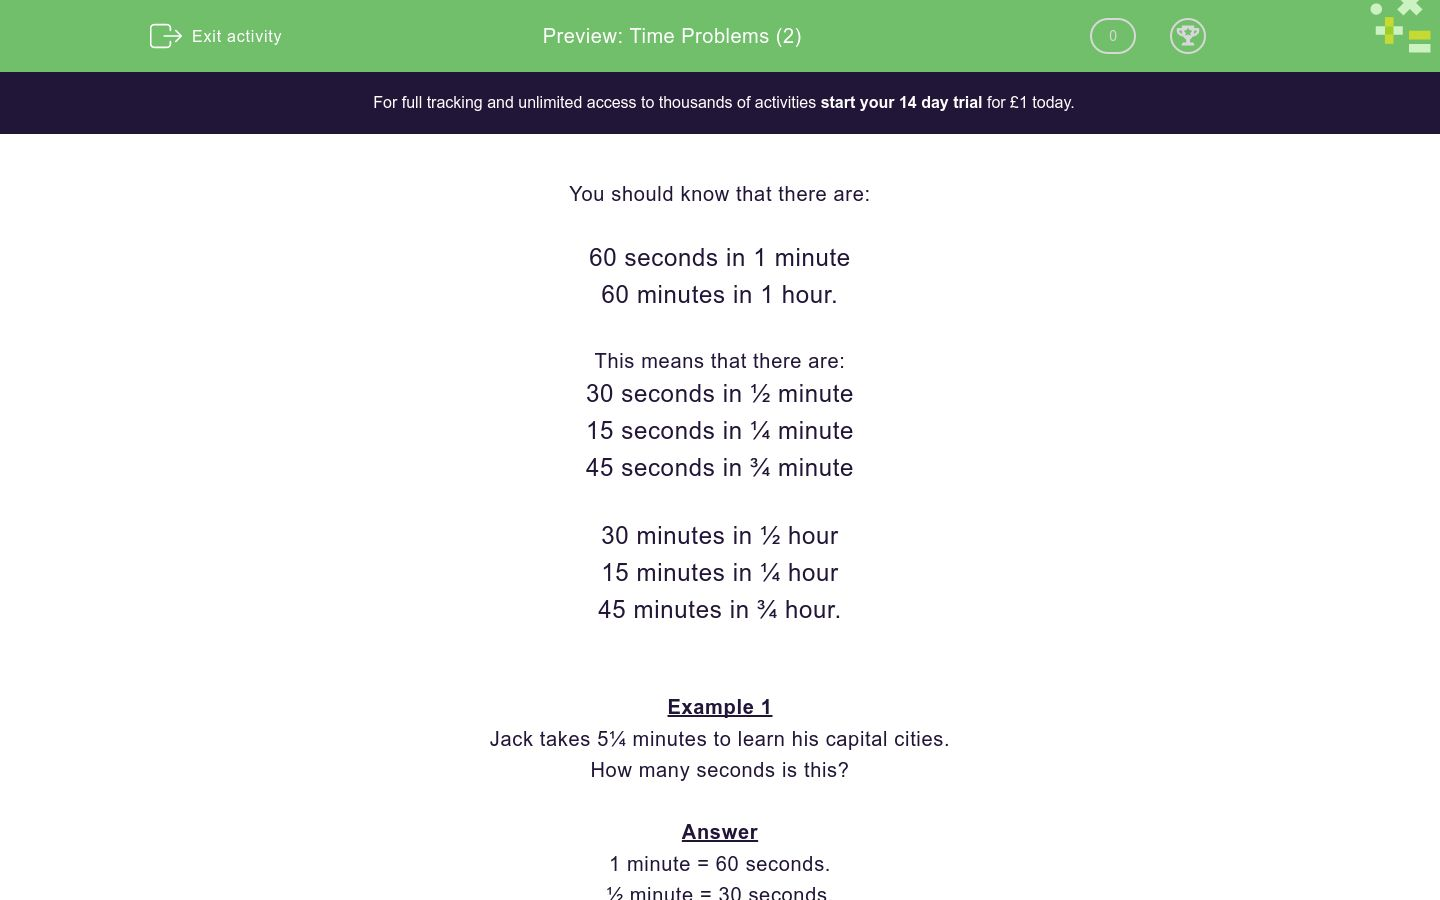 'Time Problems (2)' worksheet